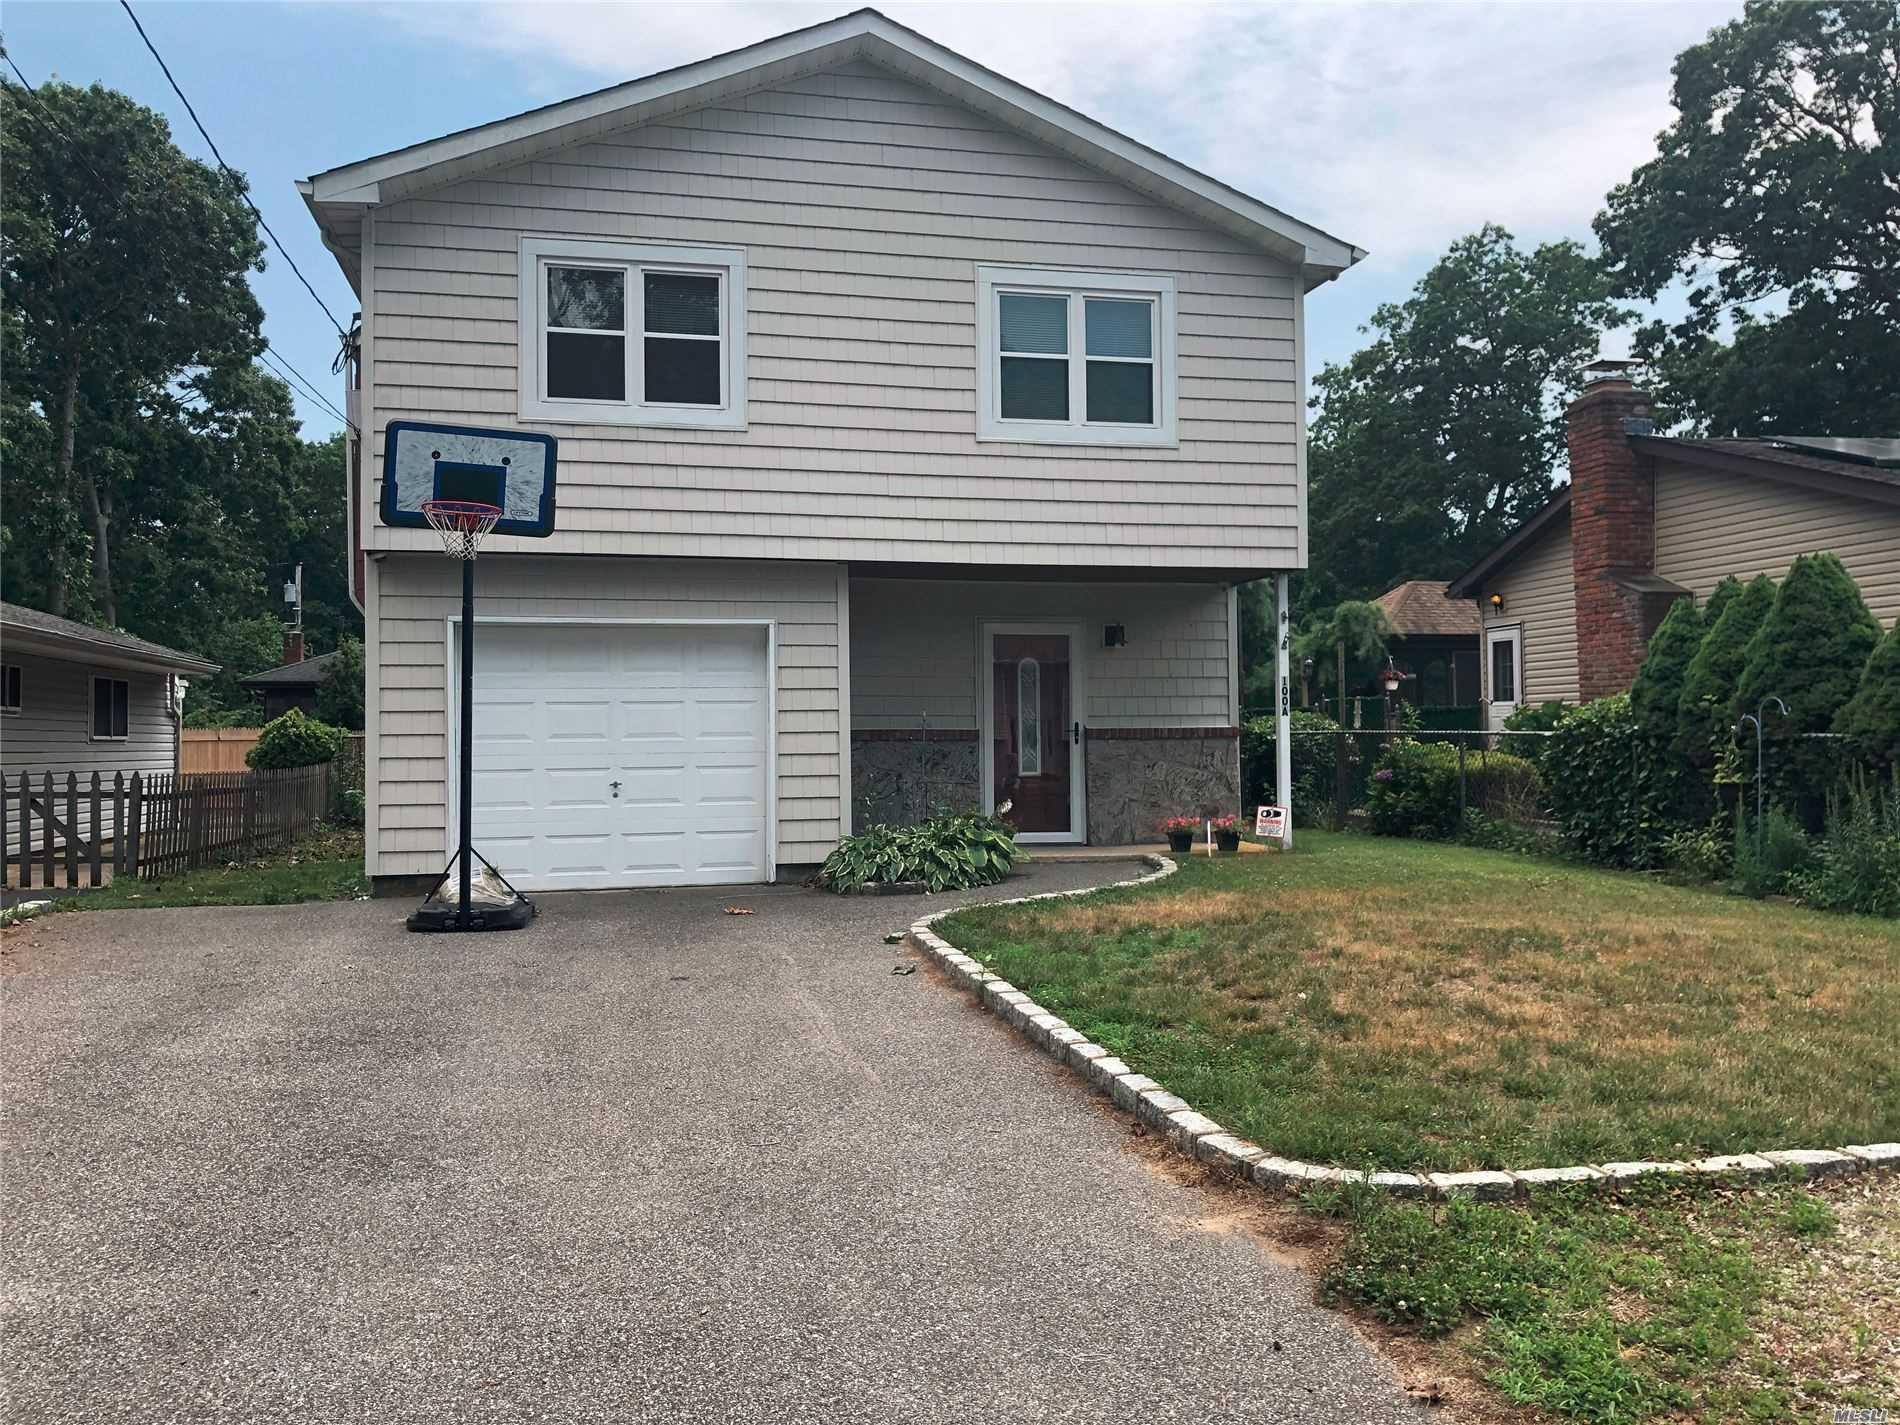 100A Wood Avenue, Mastic, NY 11950 - MLS#: 3229379